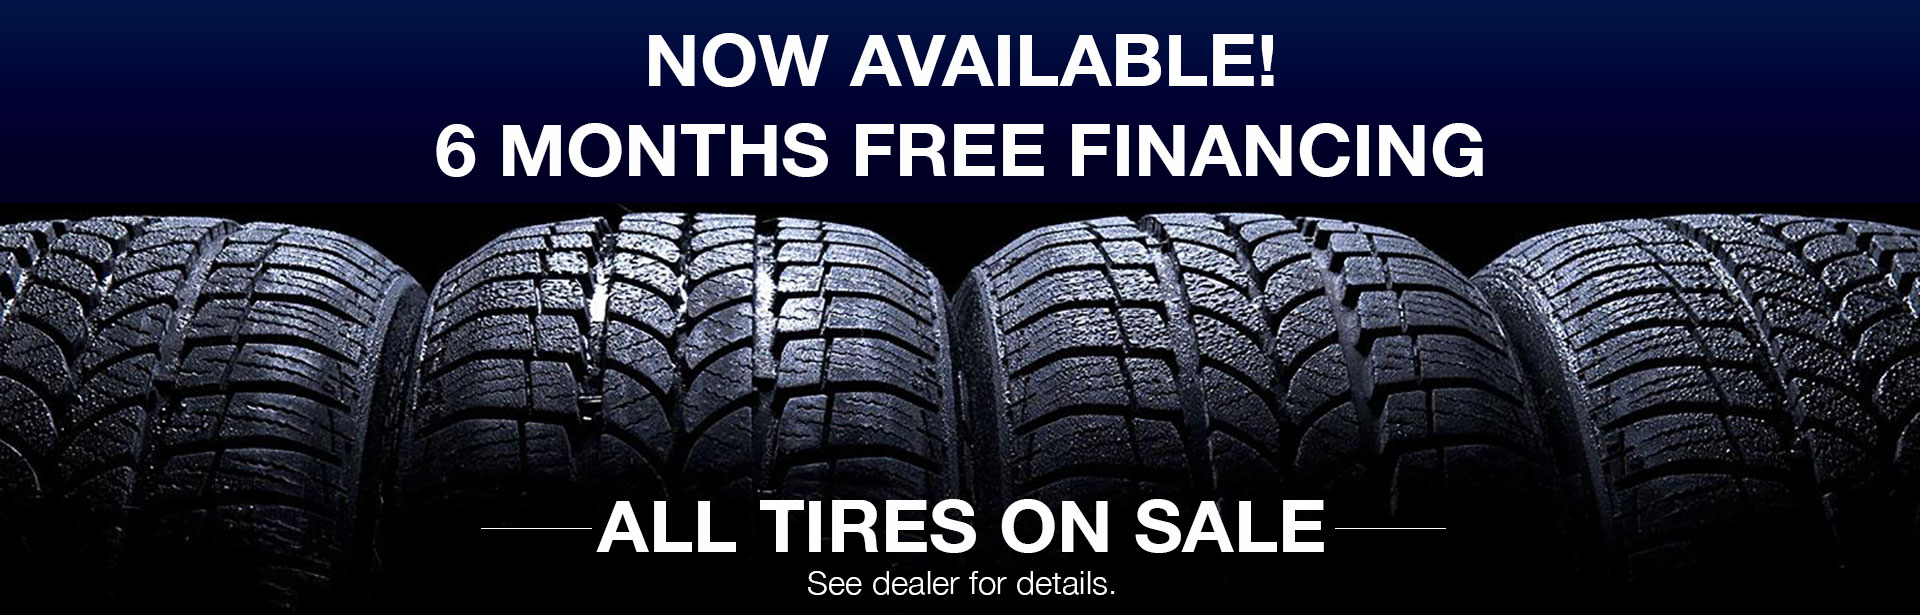 Hyundai Tire Offer